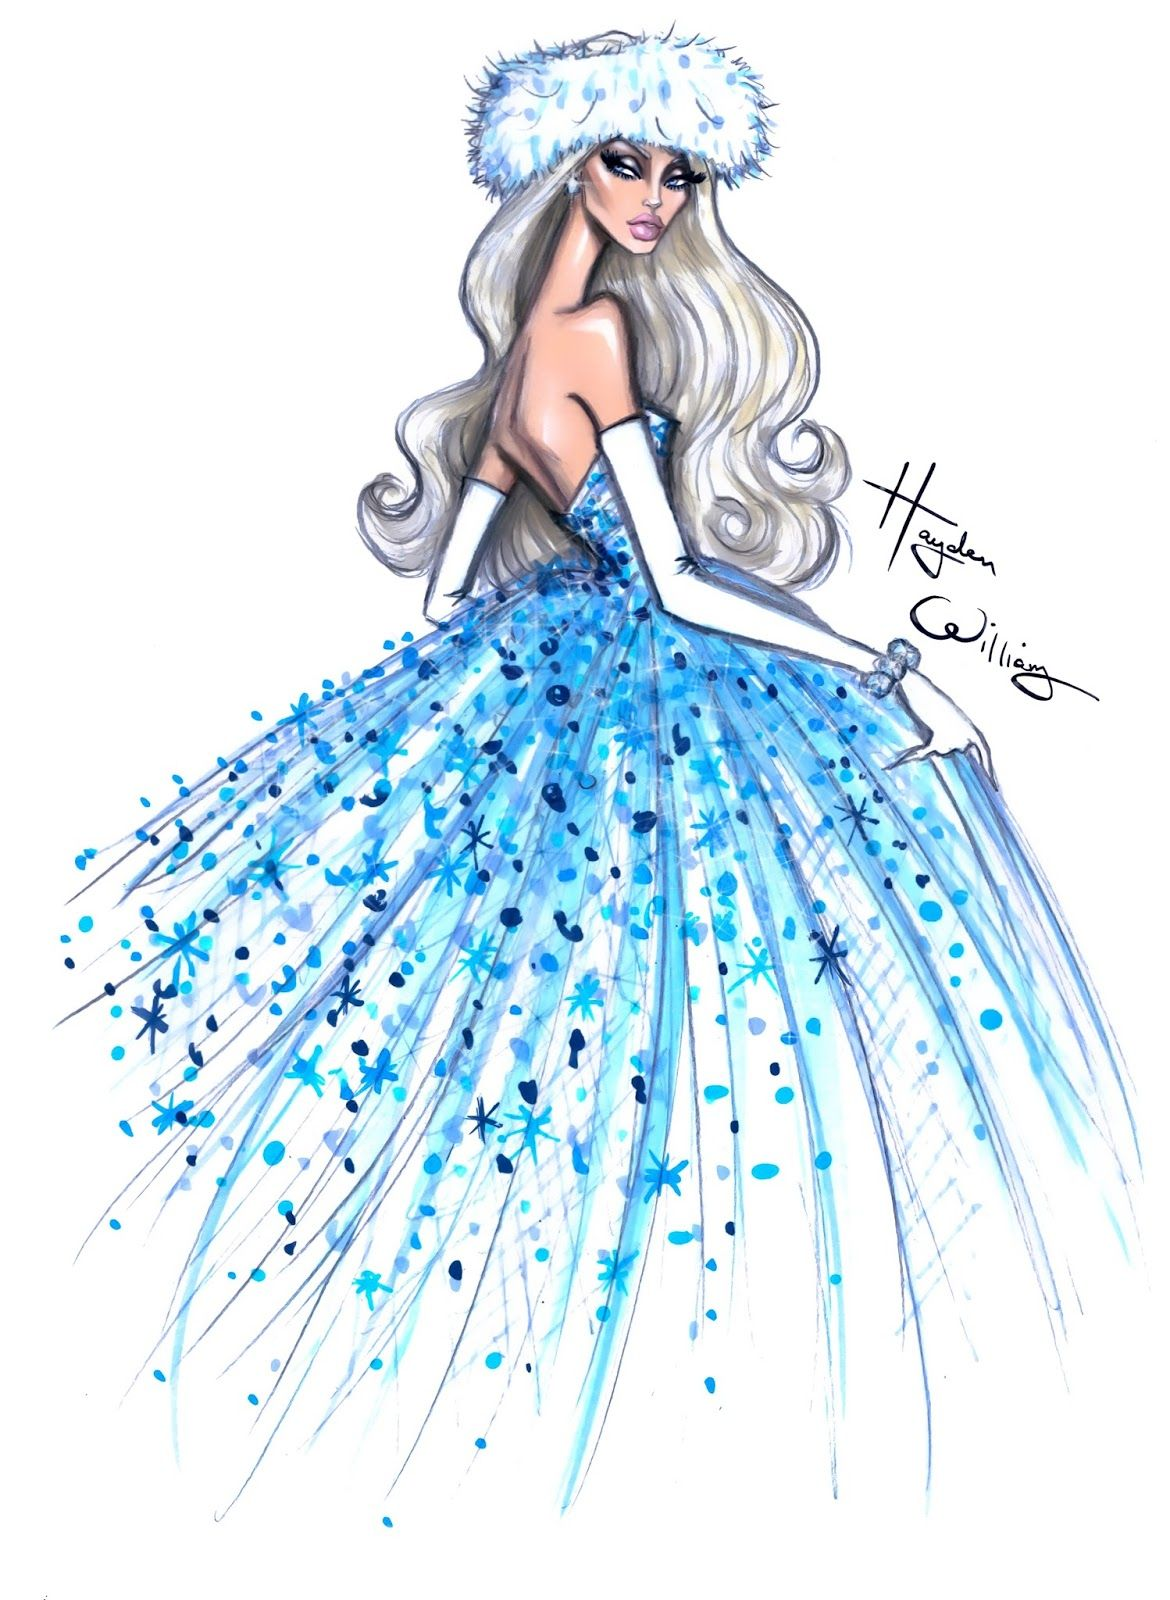 Hayden williams fashion illustrations uwinter dreamu by hayden